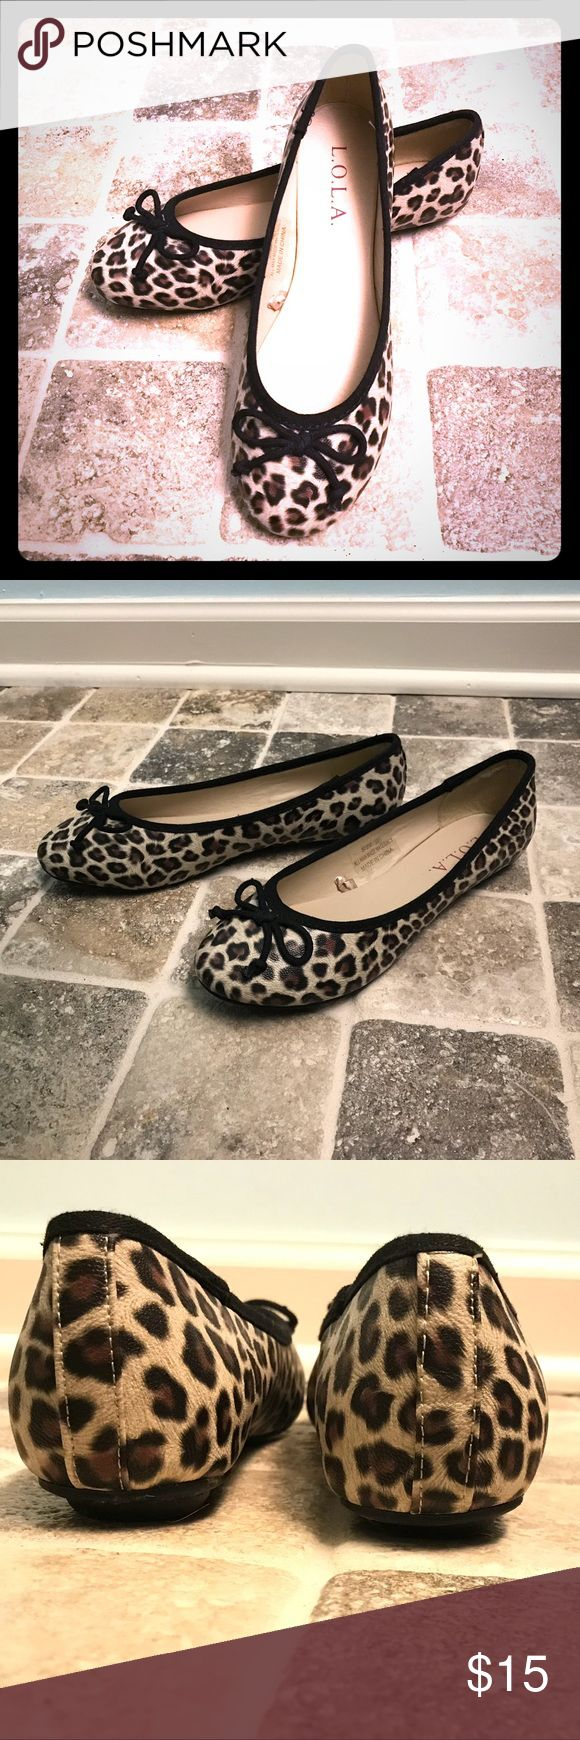 Leopard Flats!! Size 6. Leopard Flats!! Size 6. Not really furry, printed on faux leather, so easy to clean. Excellent condition, barely worn. Shoes Flats & Loafers